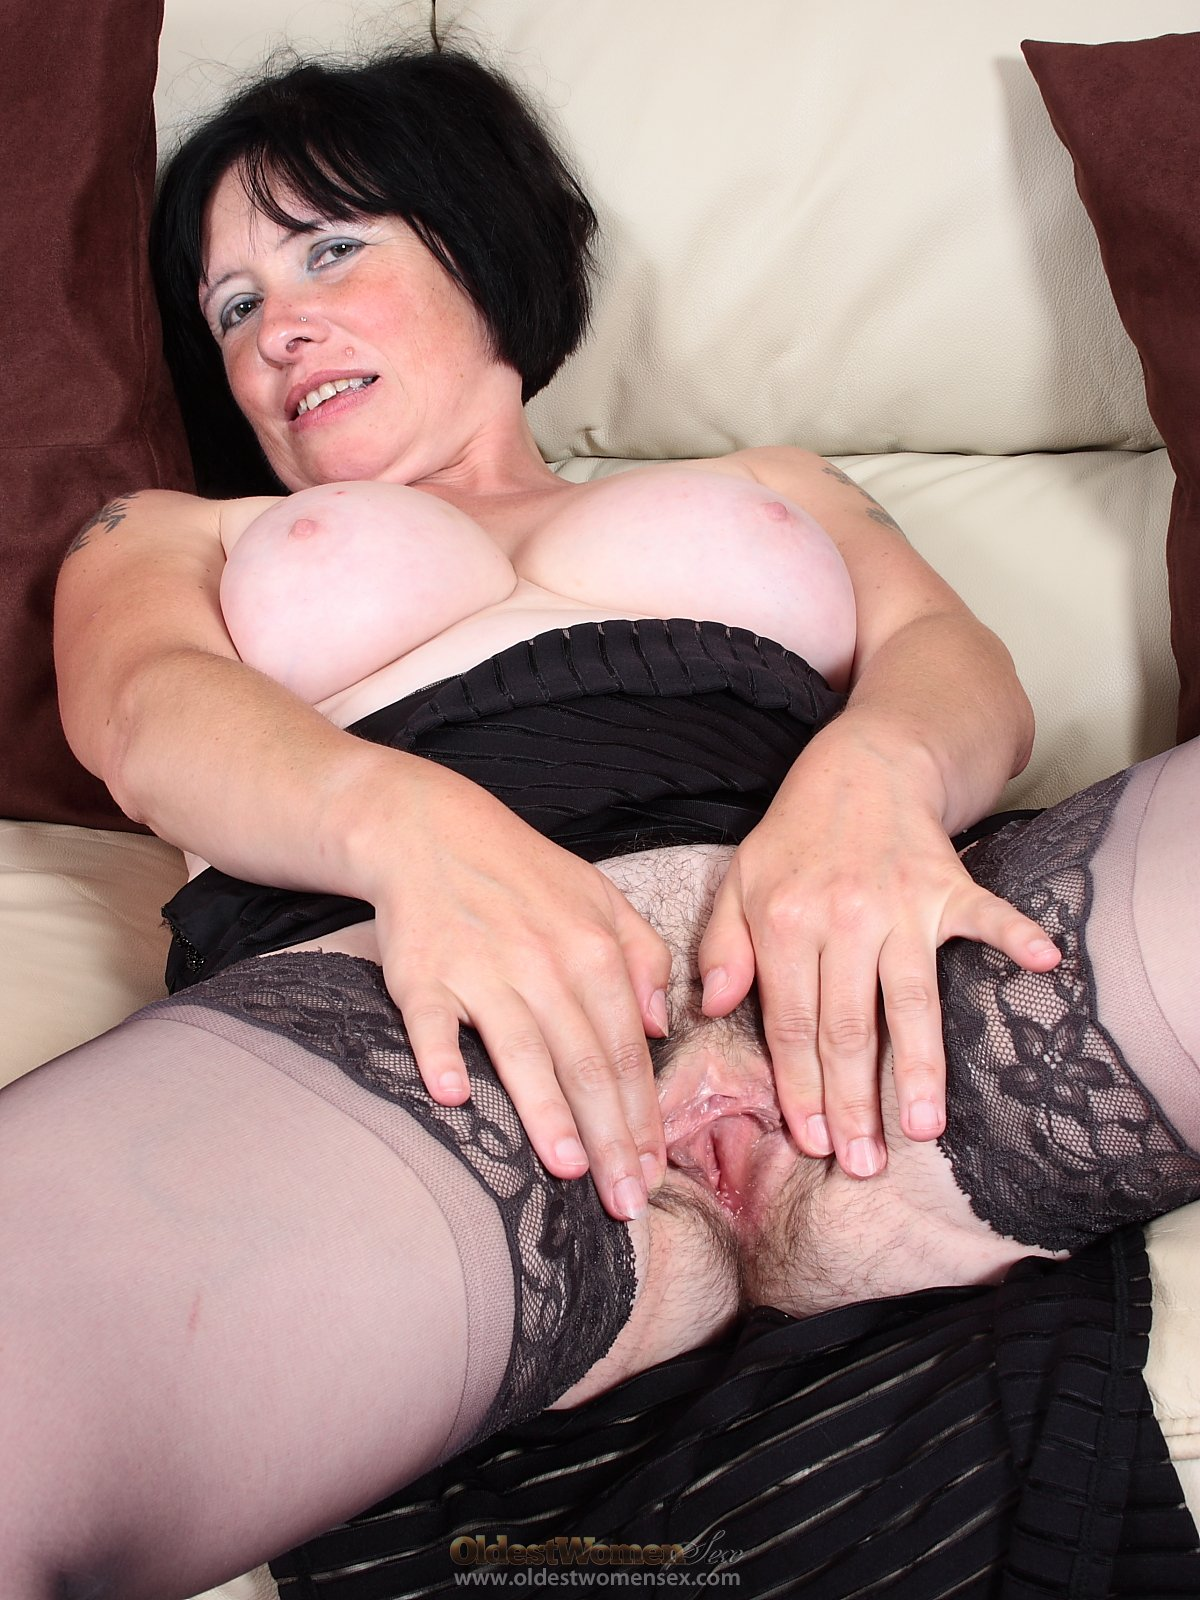 Pussy Older Woman Semales Ass Galery Thepicsaholic Com Pussy Older Woman Semales Ass Galery Thepicsaholic Com